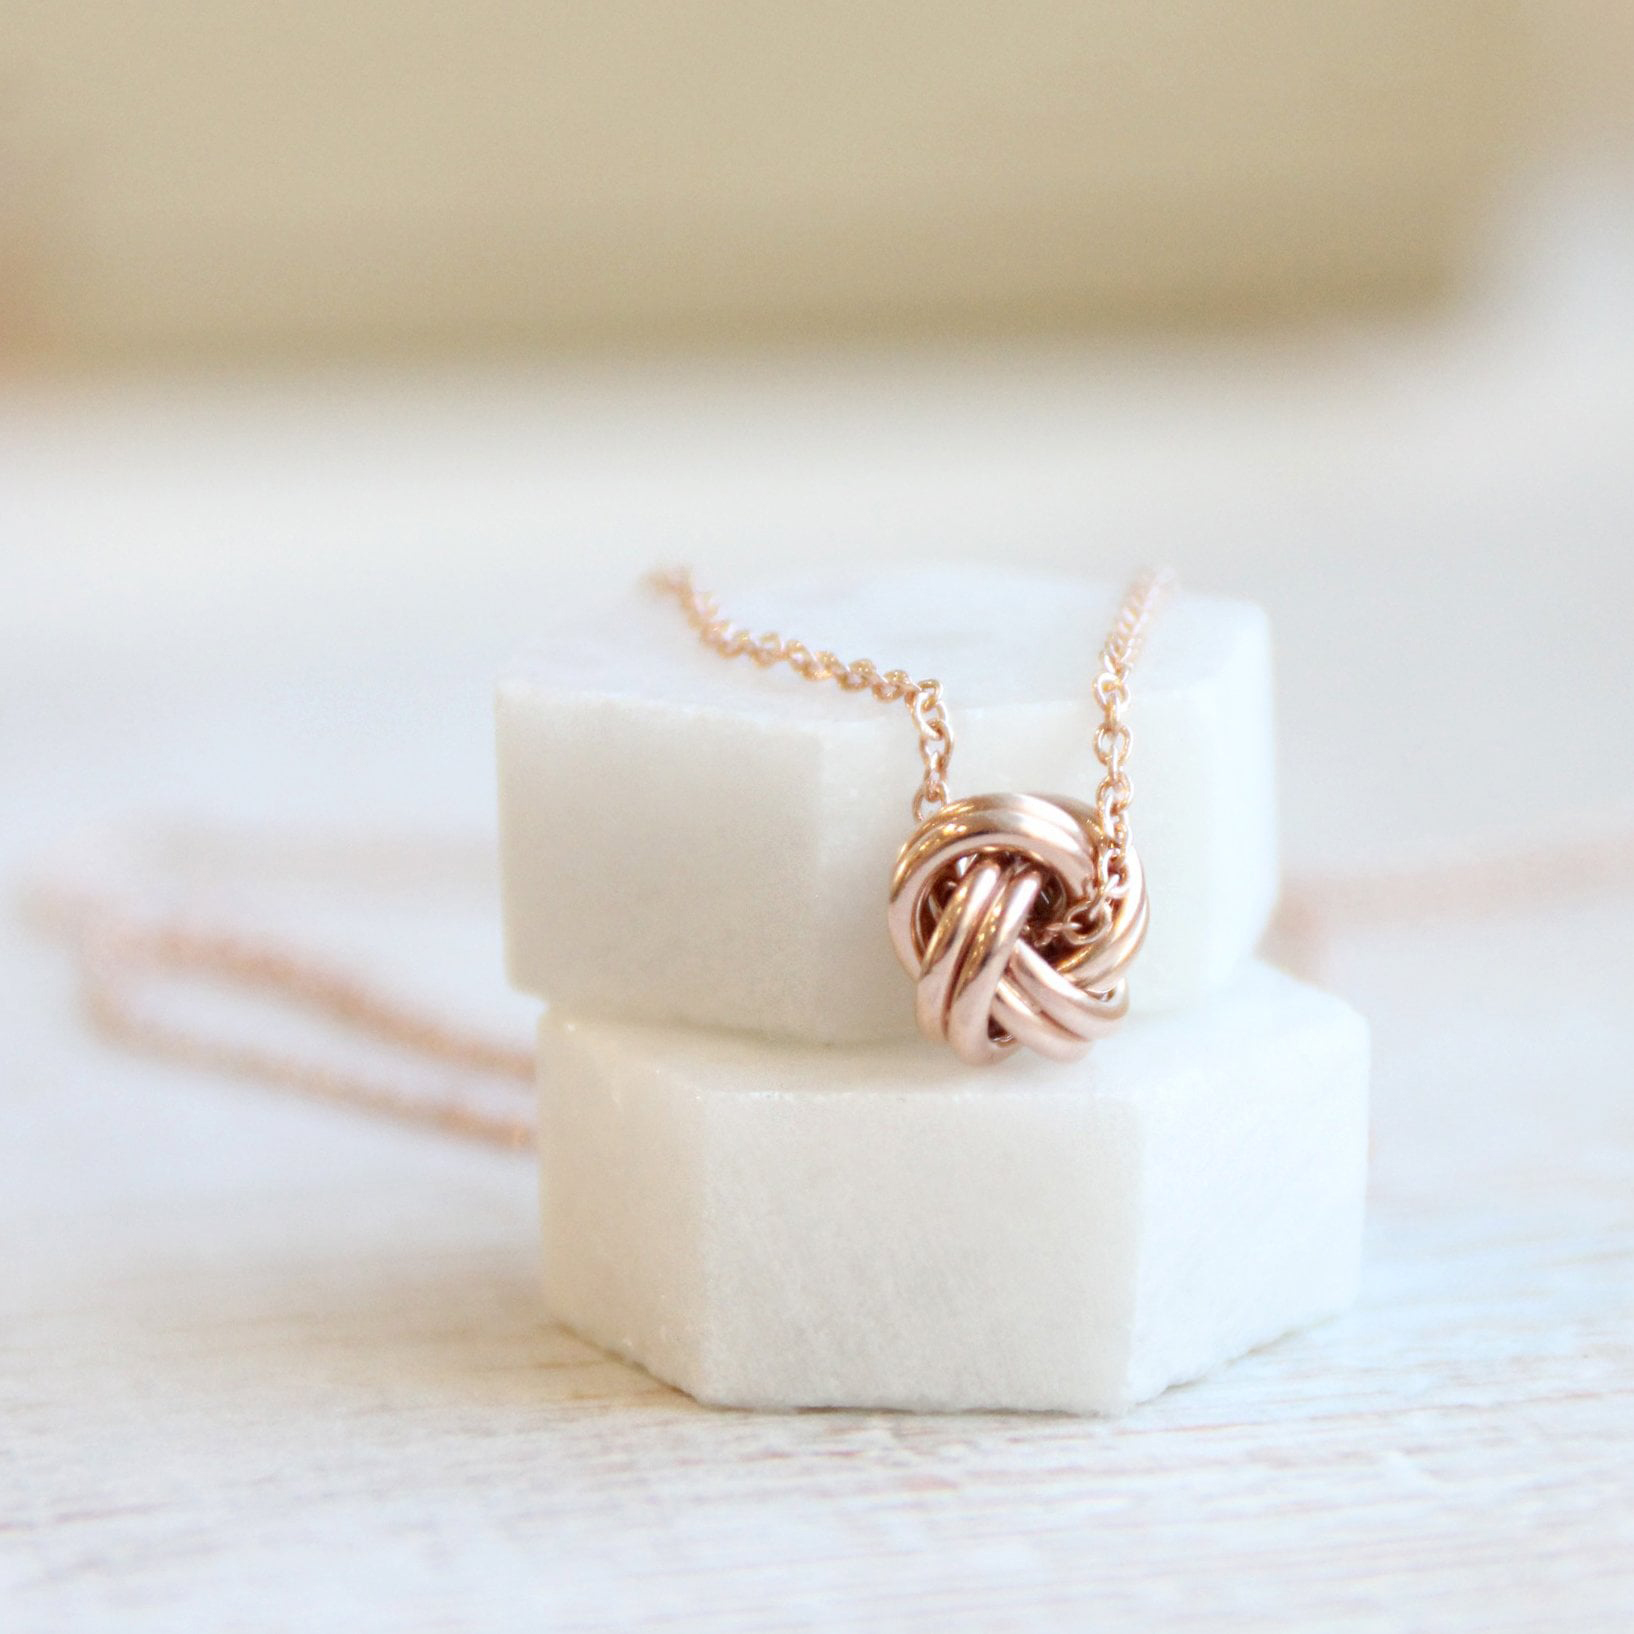 Rose Gold Vermeil Quote Necklace You Can Never Untie The Knot Of True Friendship The Perfect Keepsake Gift